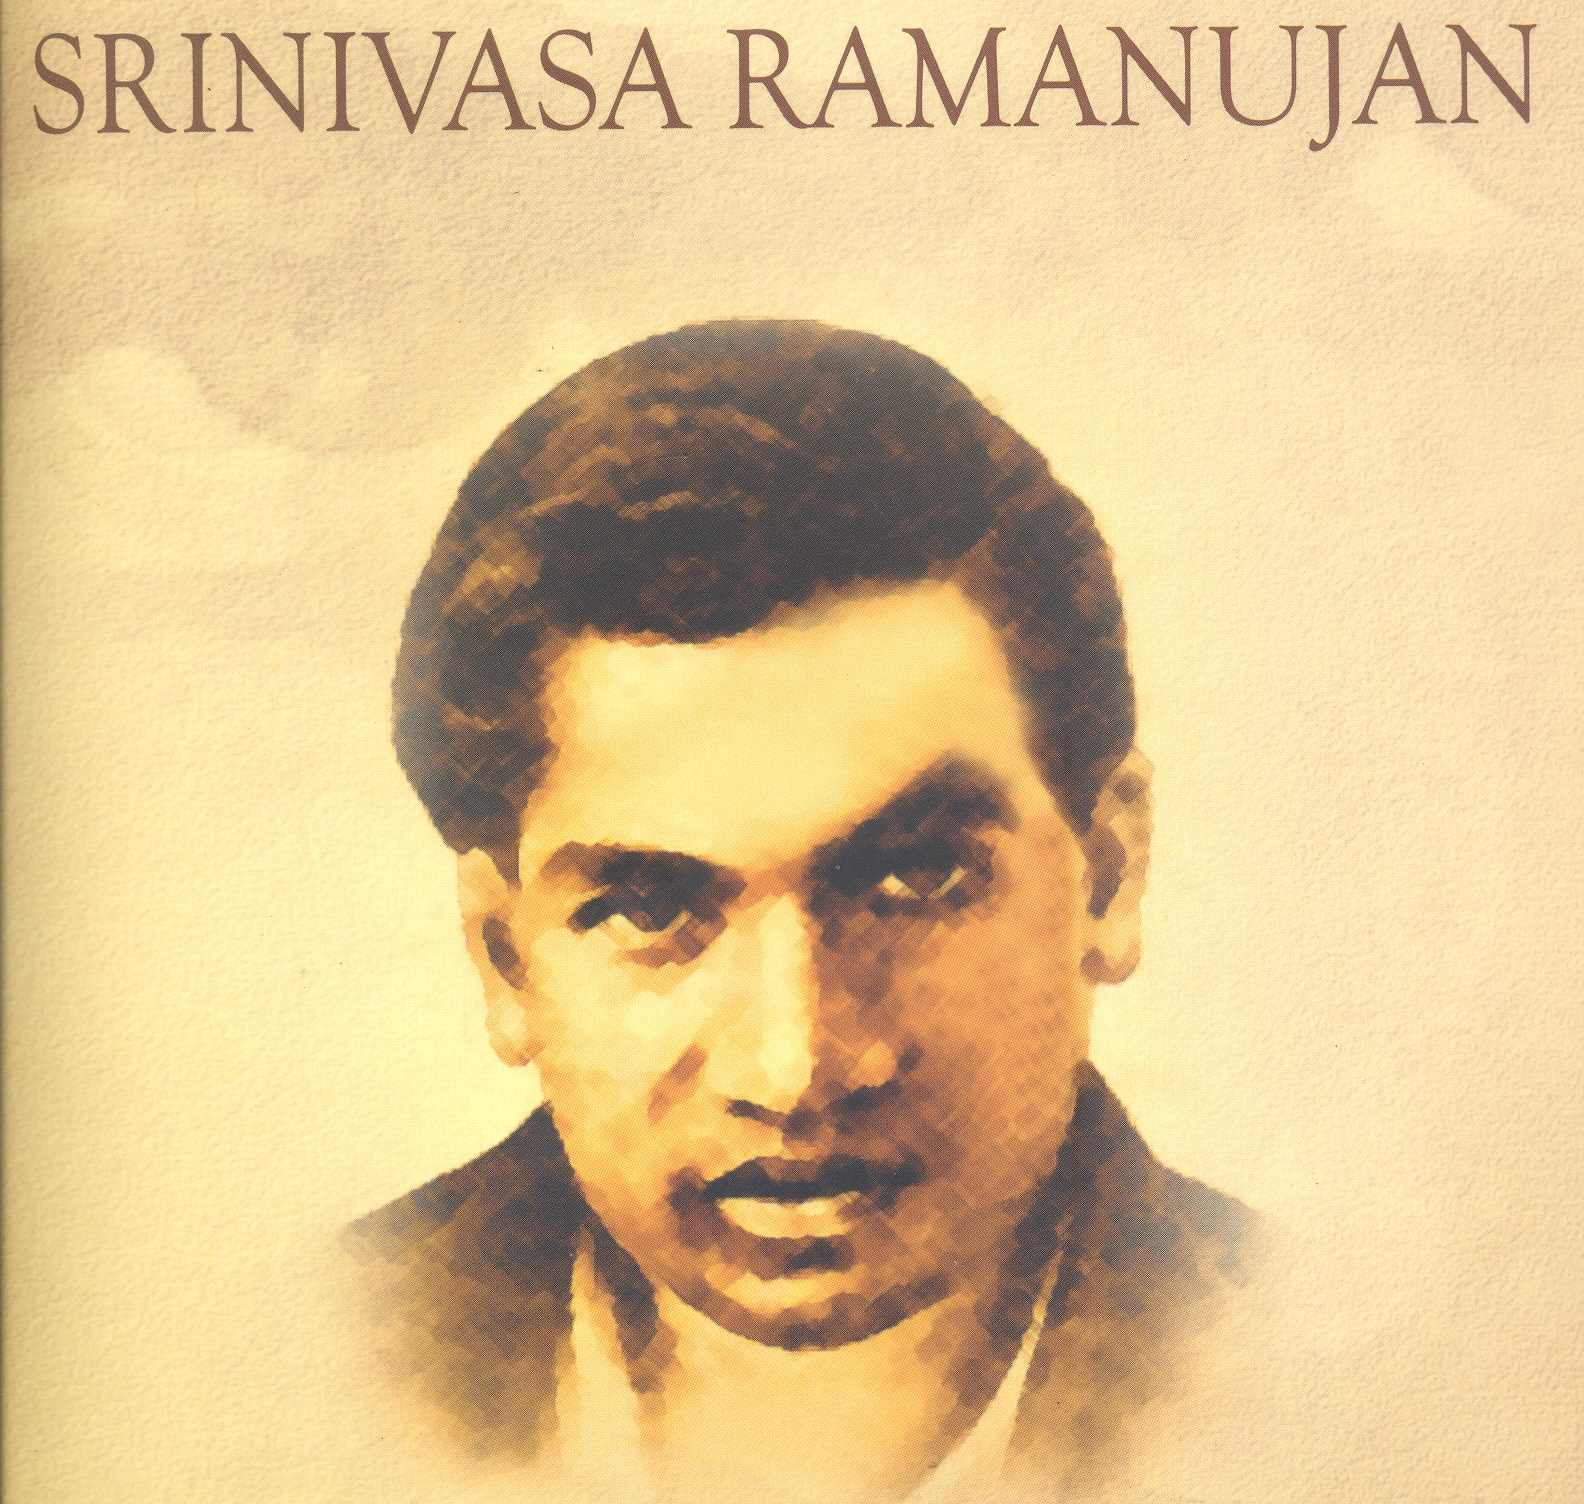 essay on srinivasa ramanujan essay on srinivasa ramanujan in hindi college essays college application essays essay on srinivasa college essay short essay on srinivasa ramanujan